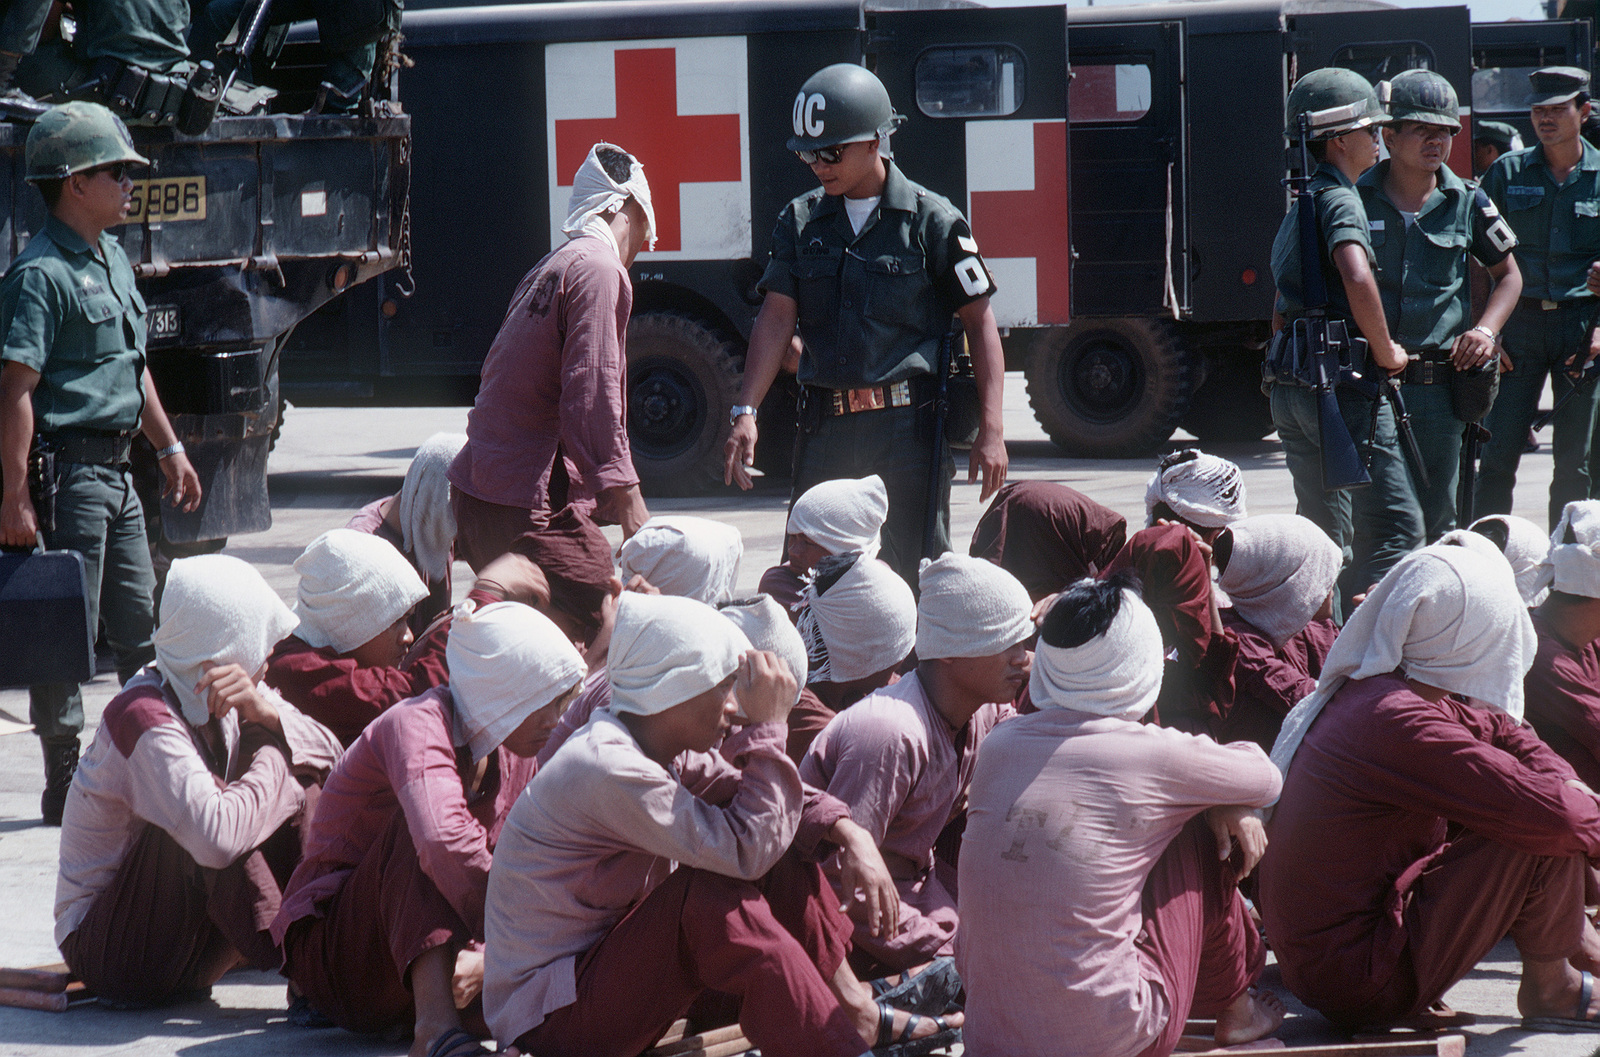 Viet Cong POWs sit on the ramp at Tan Son Nhut Air Base under the watchful eyes of South Vietnamese military police. The POWs will be airlifted to Loc Ninh, South Vietnam for the prisoner exchange between the United States/South Vietnam and North Vietnam/Viet Cong militaries